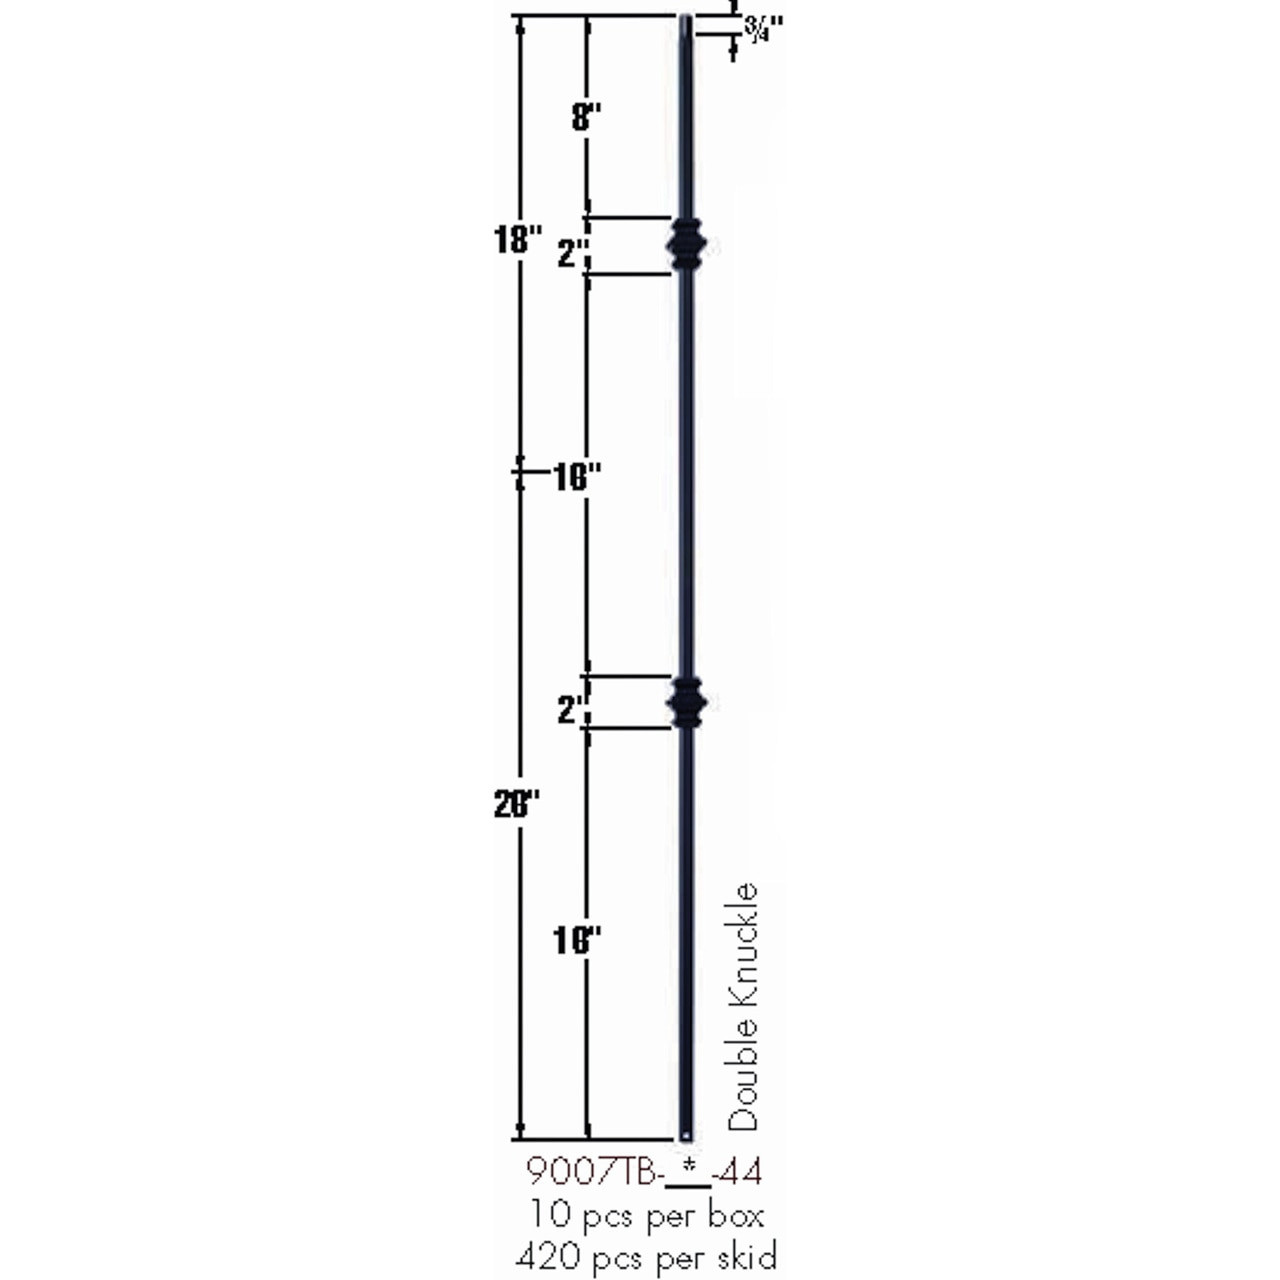 9007TB Double Knuckle Tubular Steel Baluster Dimensional Information